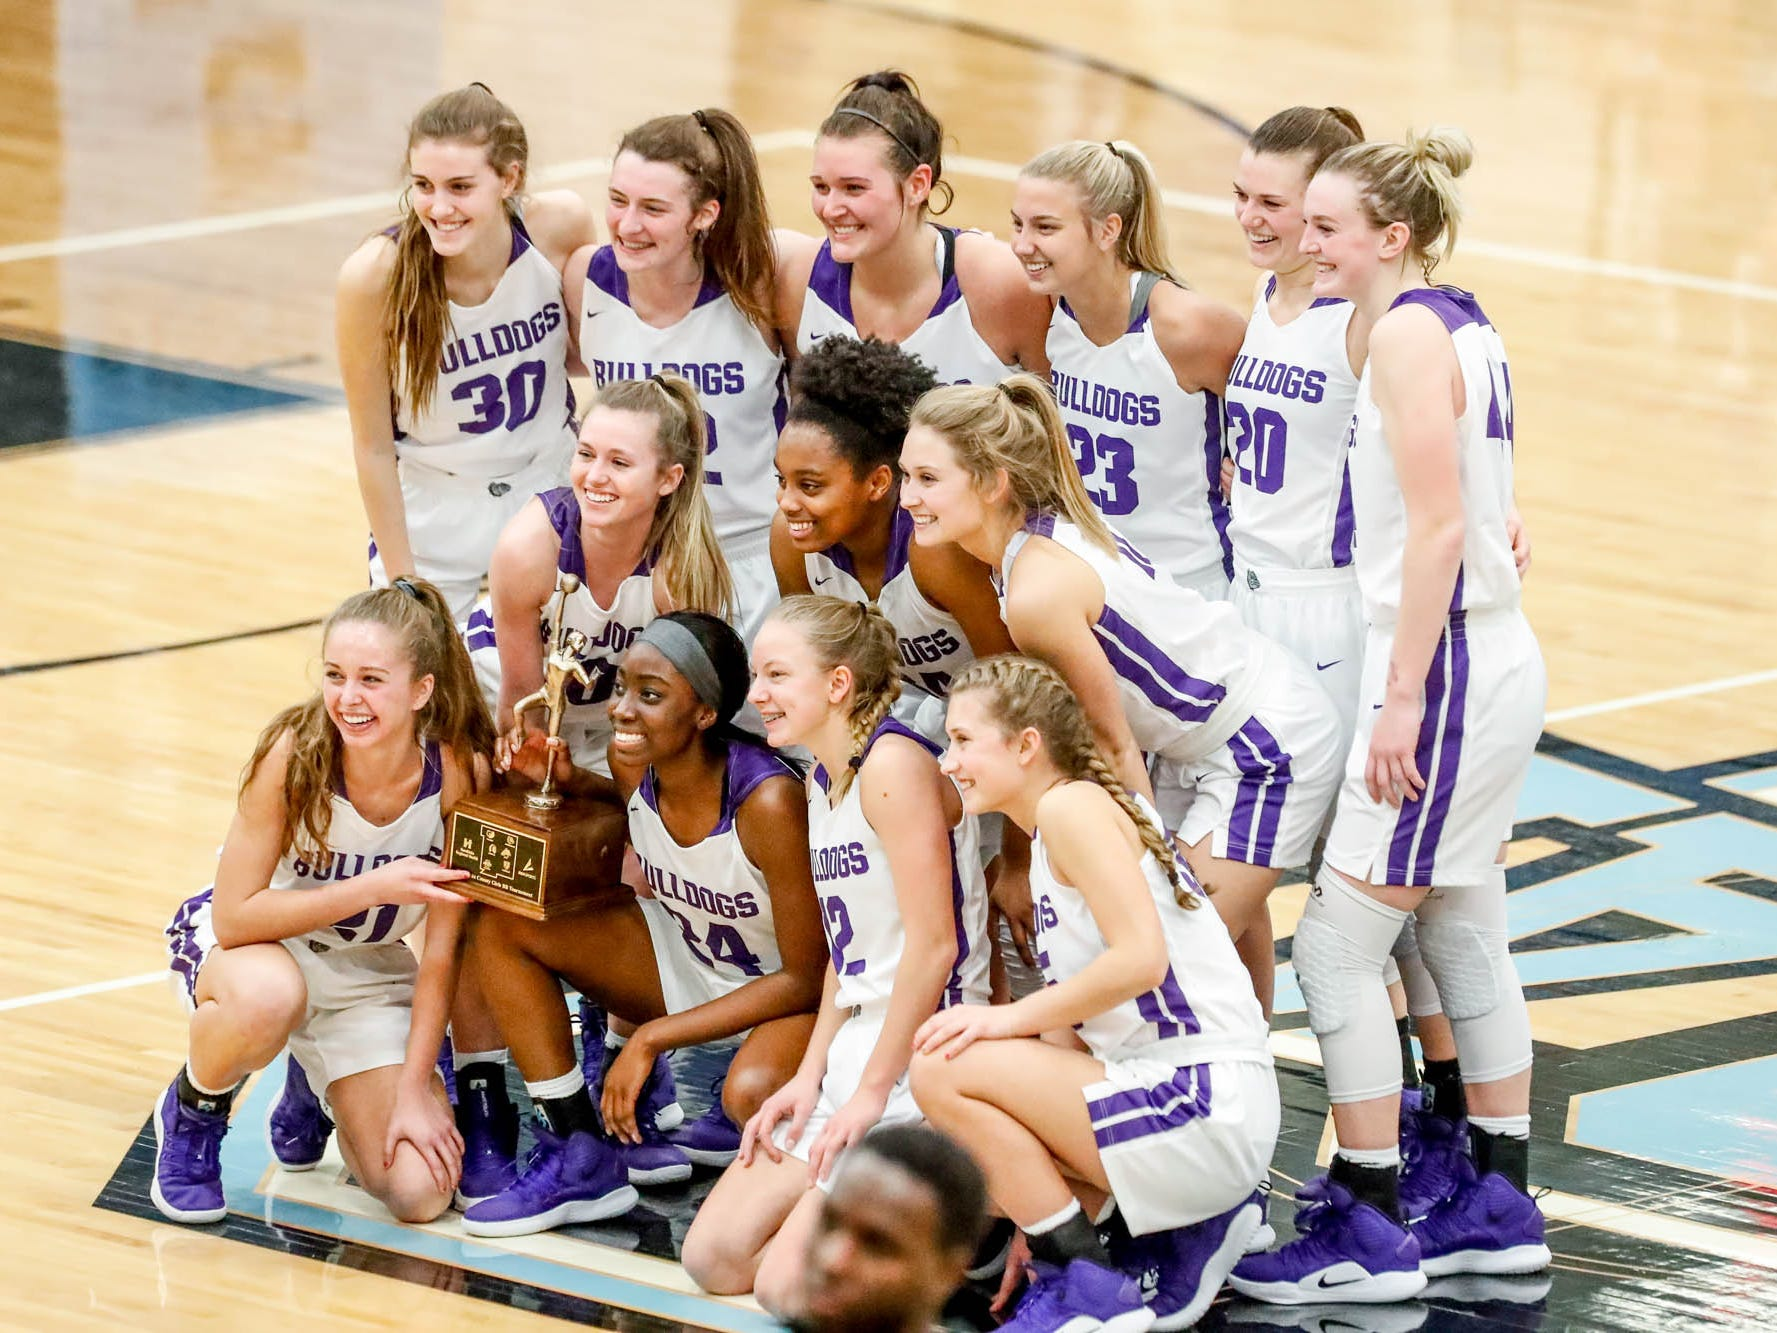 The Brownsburg girls varsity team pose for photos after winning the 2019 Hendricks County Basketball Tournament game between the Avon High School girls varsity basketball team and Brownsburg High School, held at Cascade High School on Saturday, Jan. 5, 2019. The final score was 69-44.